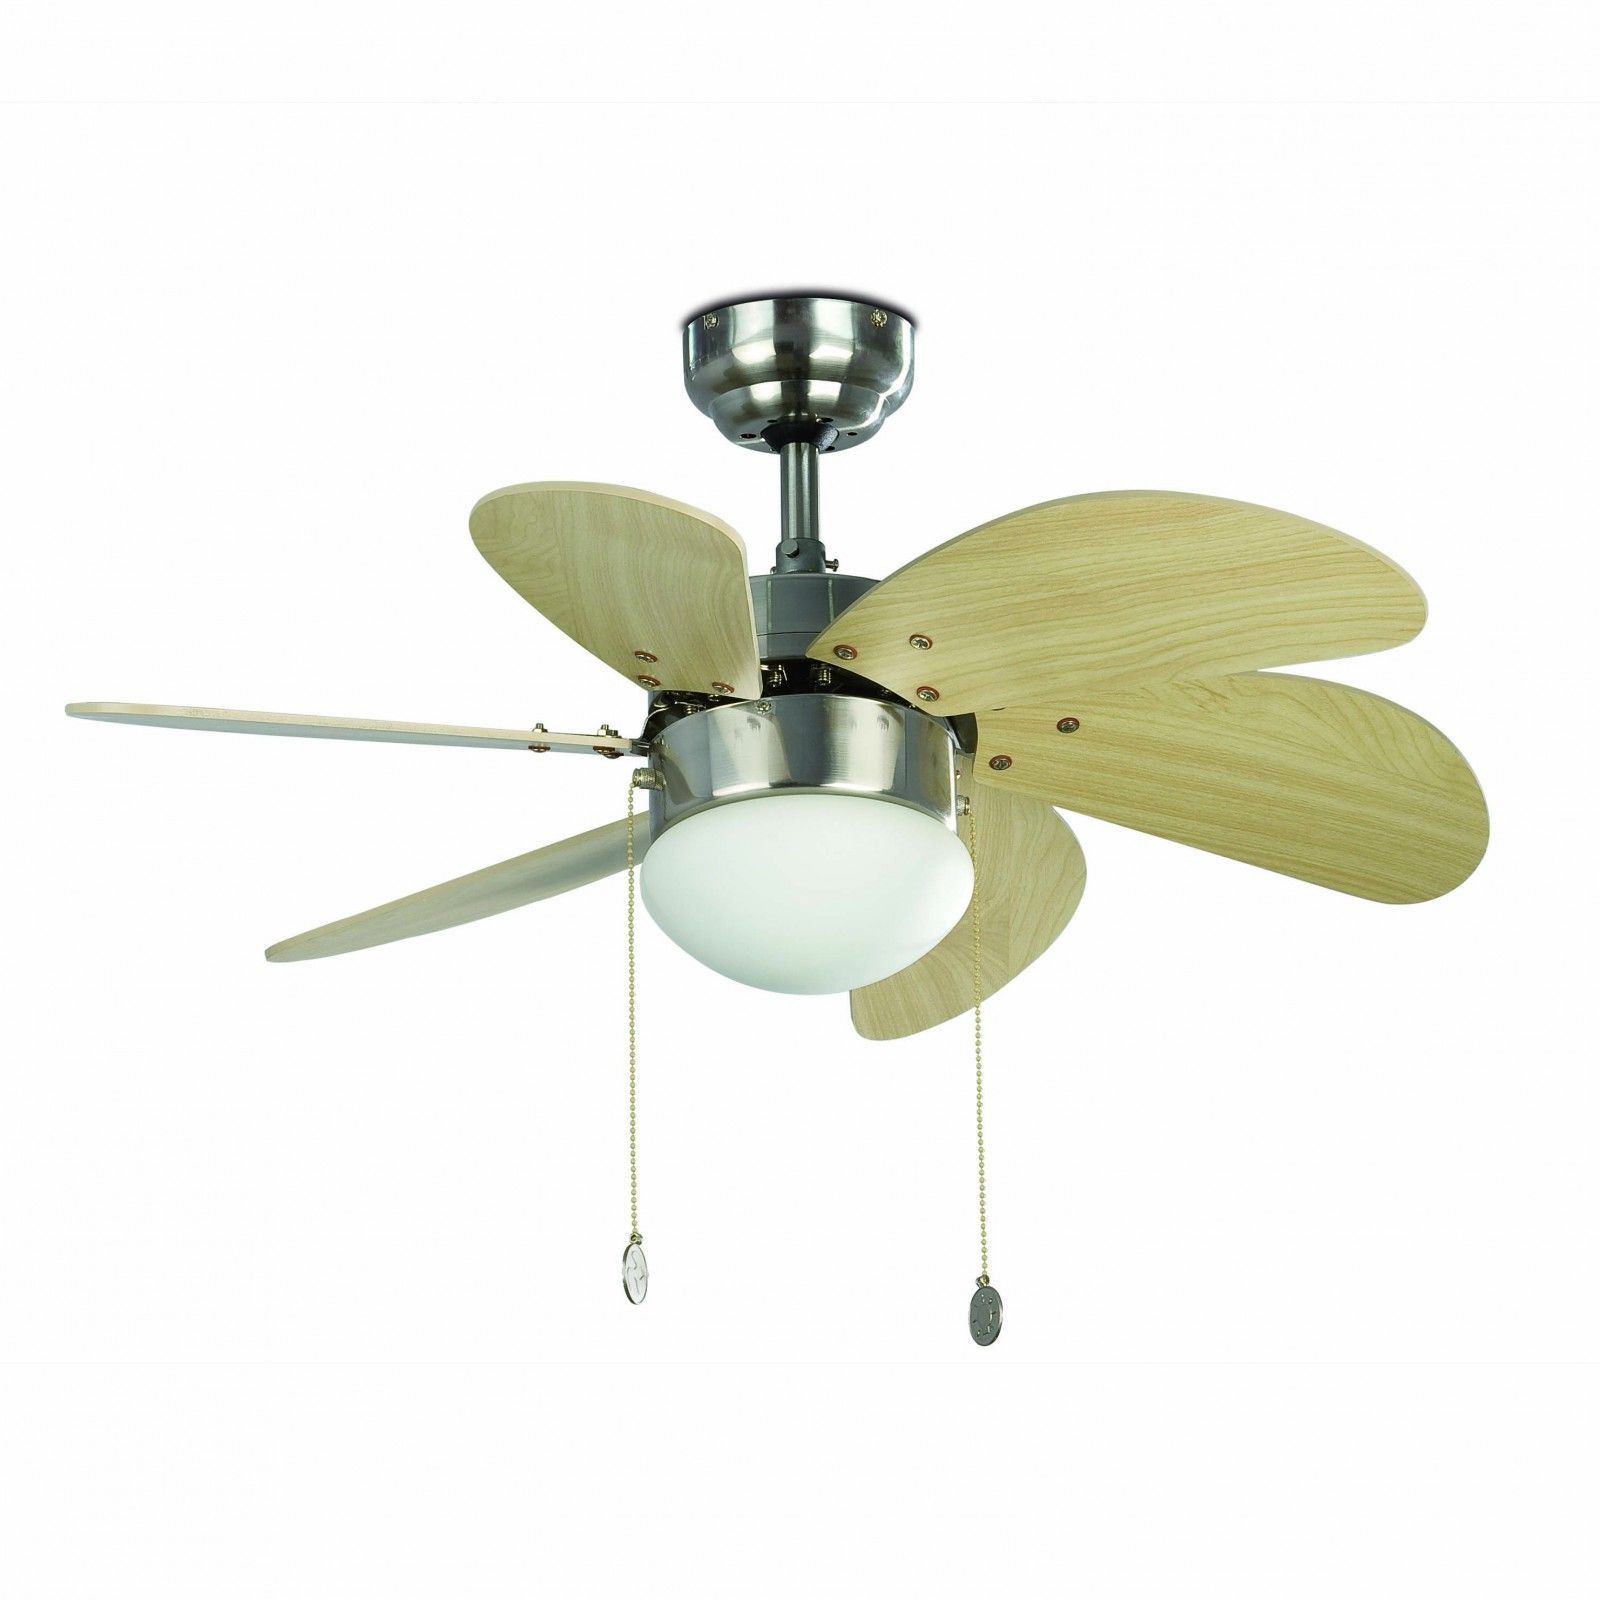 Faro ceiling fan palao nickel matt 76 cm 30 with lighting ceiling faro ceiling fan palao nickel matt 76 cm 30 with lighting ceiling fans for aloadofball Choice Image